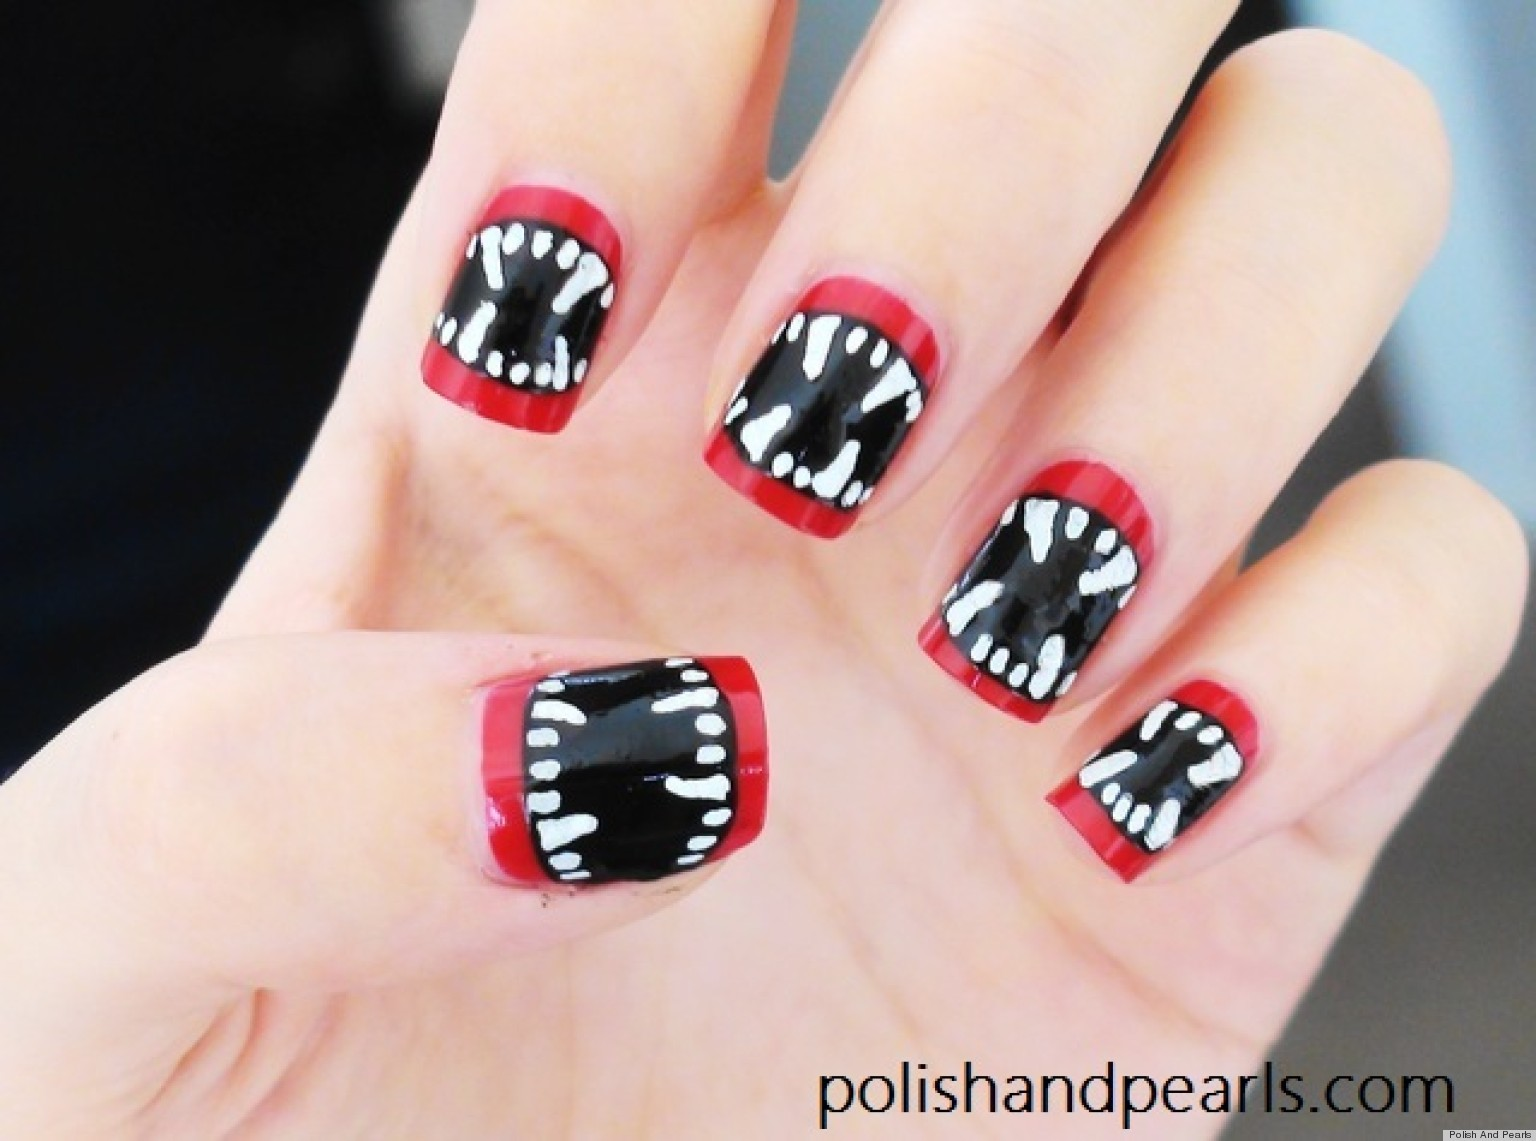 Magnificent Nail Art With Pink Nail Polish Small Nail Art By Hand Clean Nail Polish Organizer Wall Mount Pink China Glaze Nail Polish Youthful Funky Nail Art Design Pictures BlueOpi Nail Polish Malaga Wine DIY Nail Art: Halloween Inspired Vampire Fangs Manicure (VIDEO ..